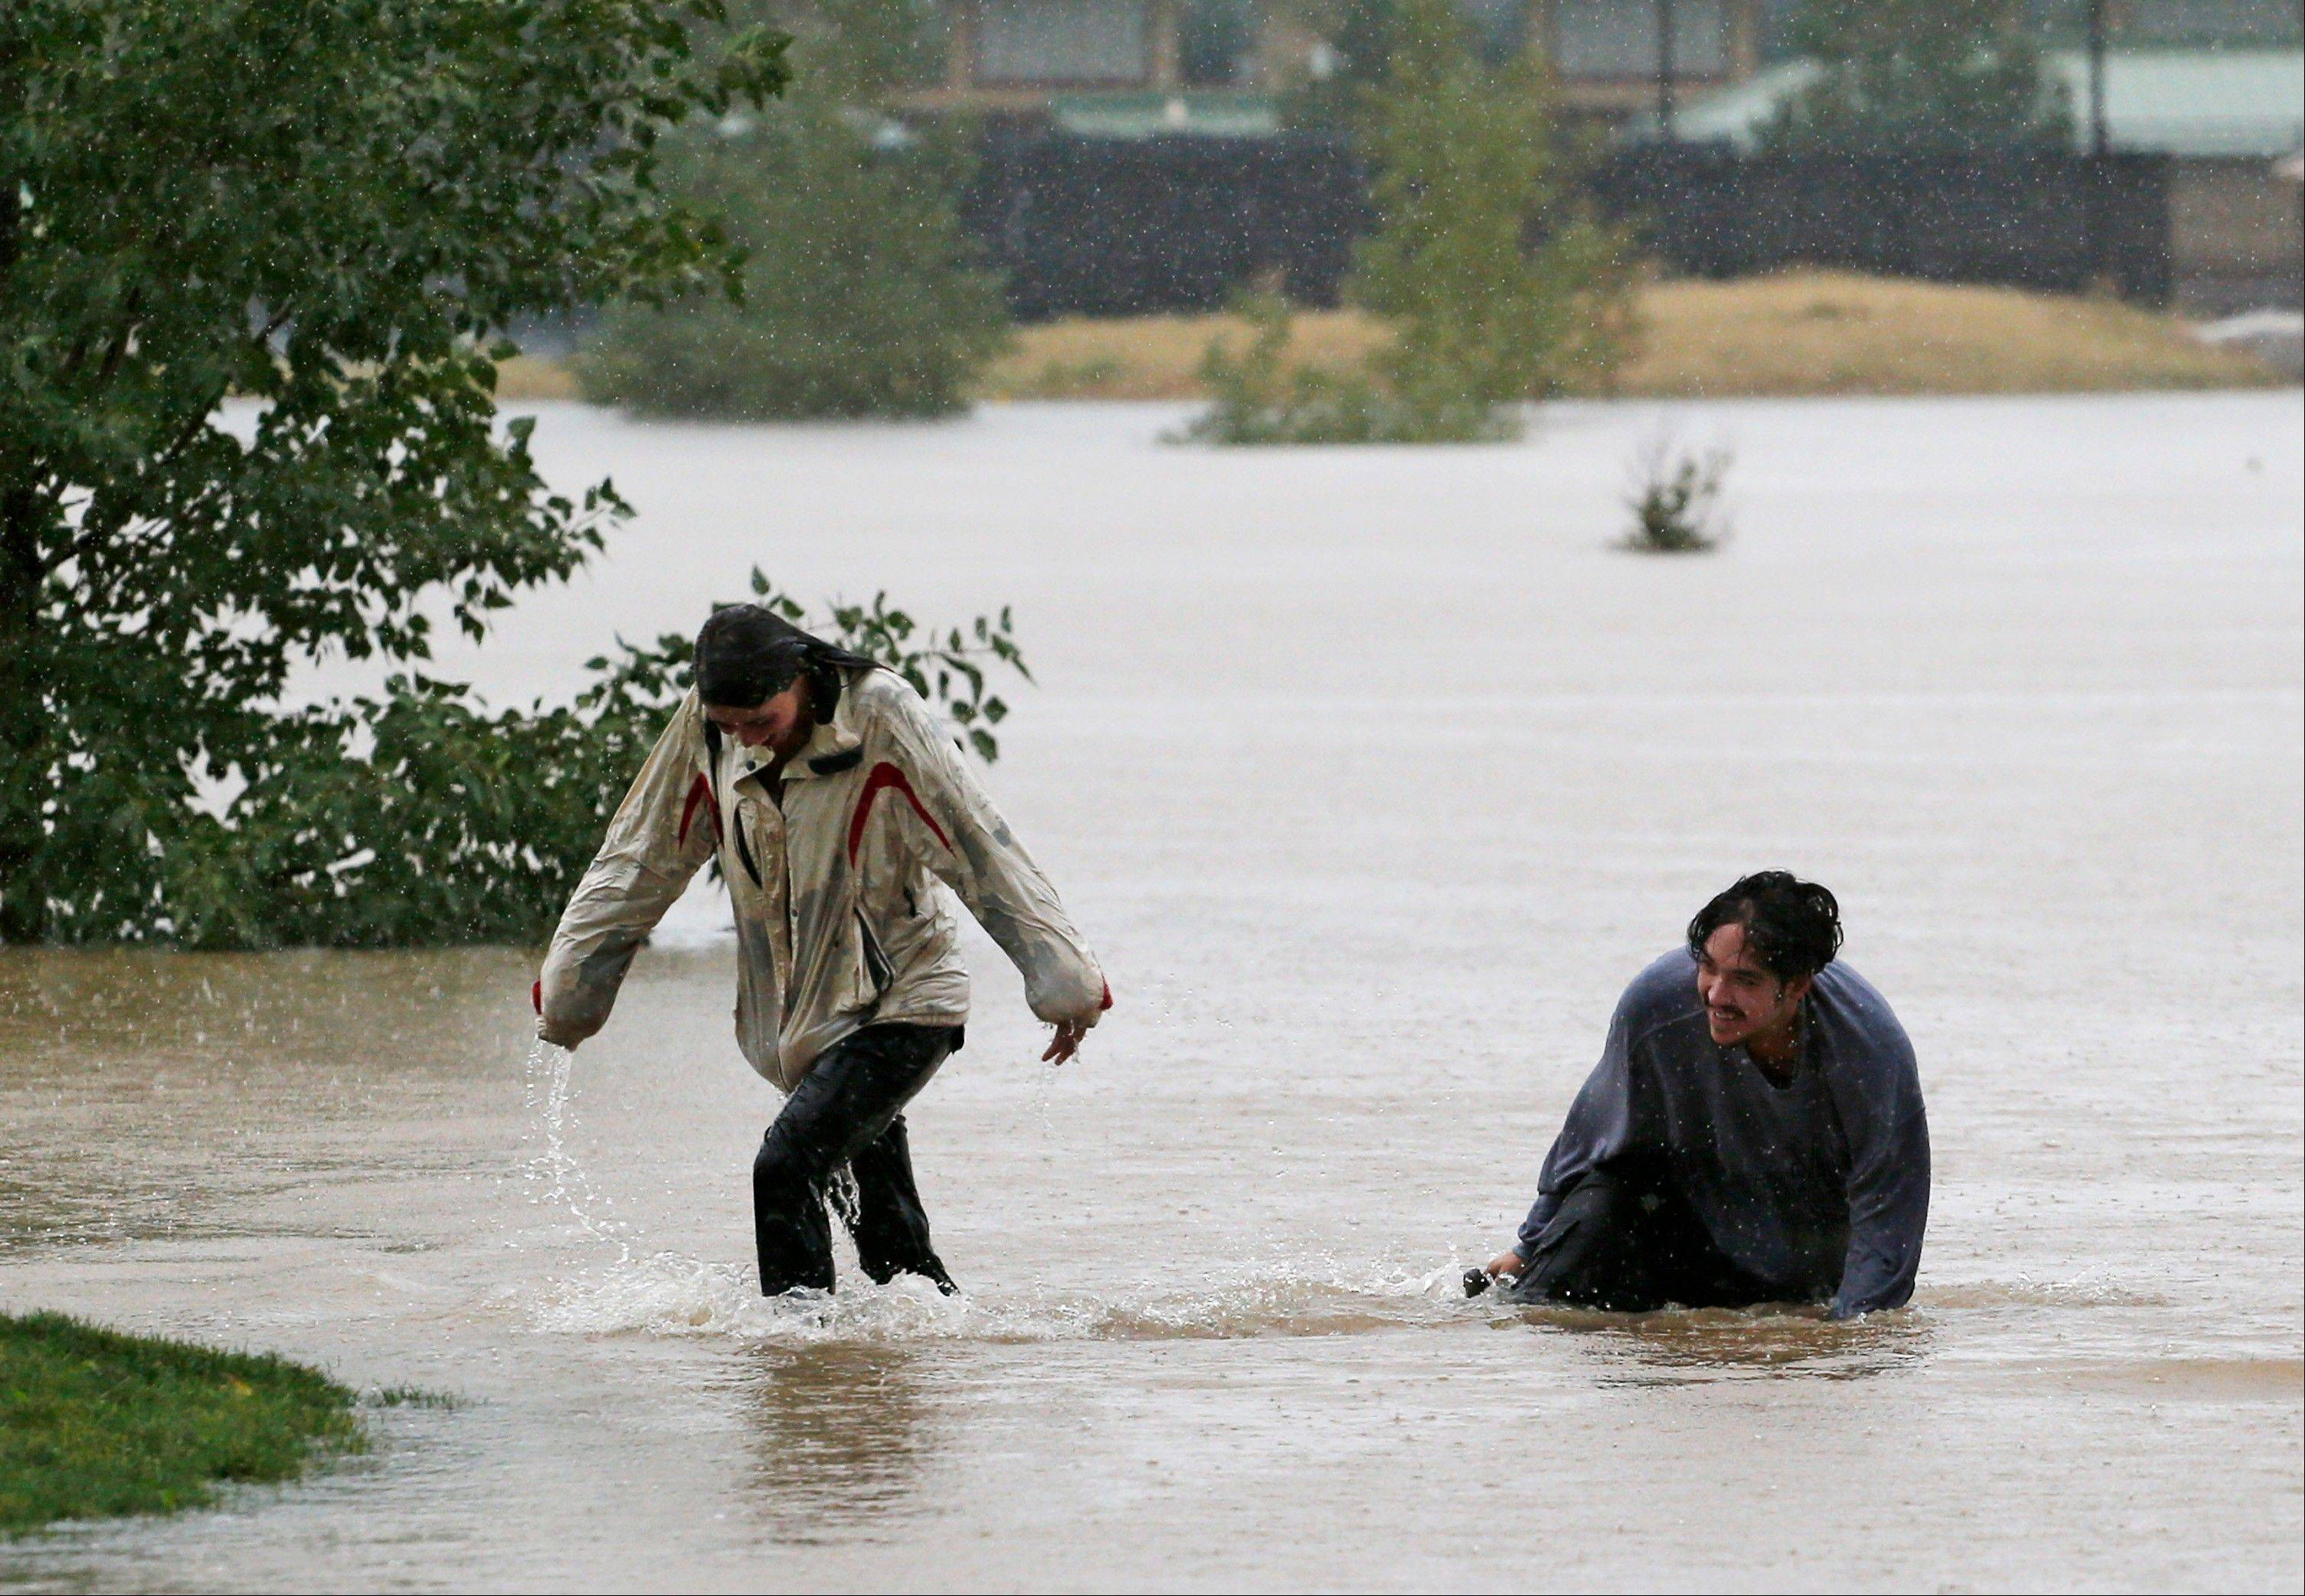 A couple plays in flood water at Utah Park in Aurora, Colo., on Thursday, Sept. 12, 2013. The park was under water due to flooding. Flash flooding in Colorado has cut off access to towns, closed the University of Colorado in Boulder and left at least three people dead.